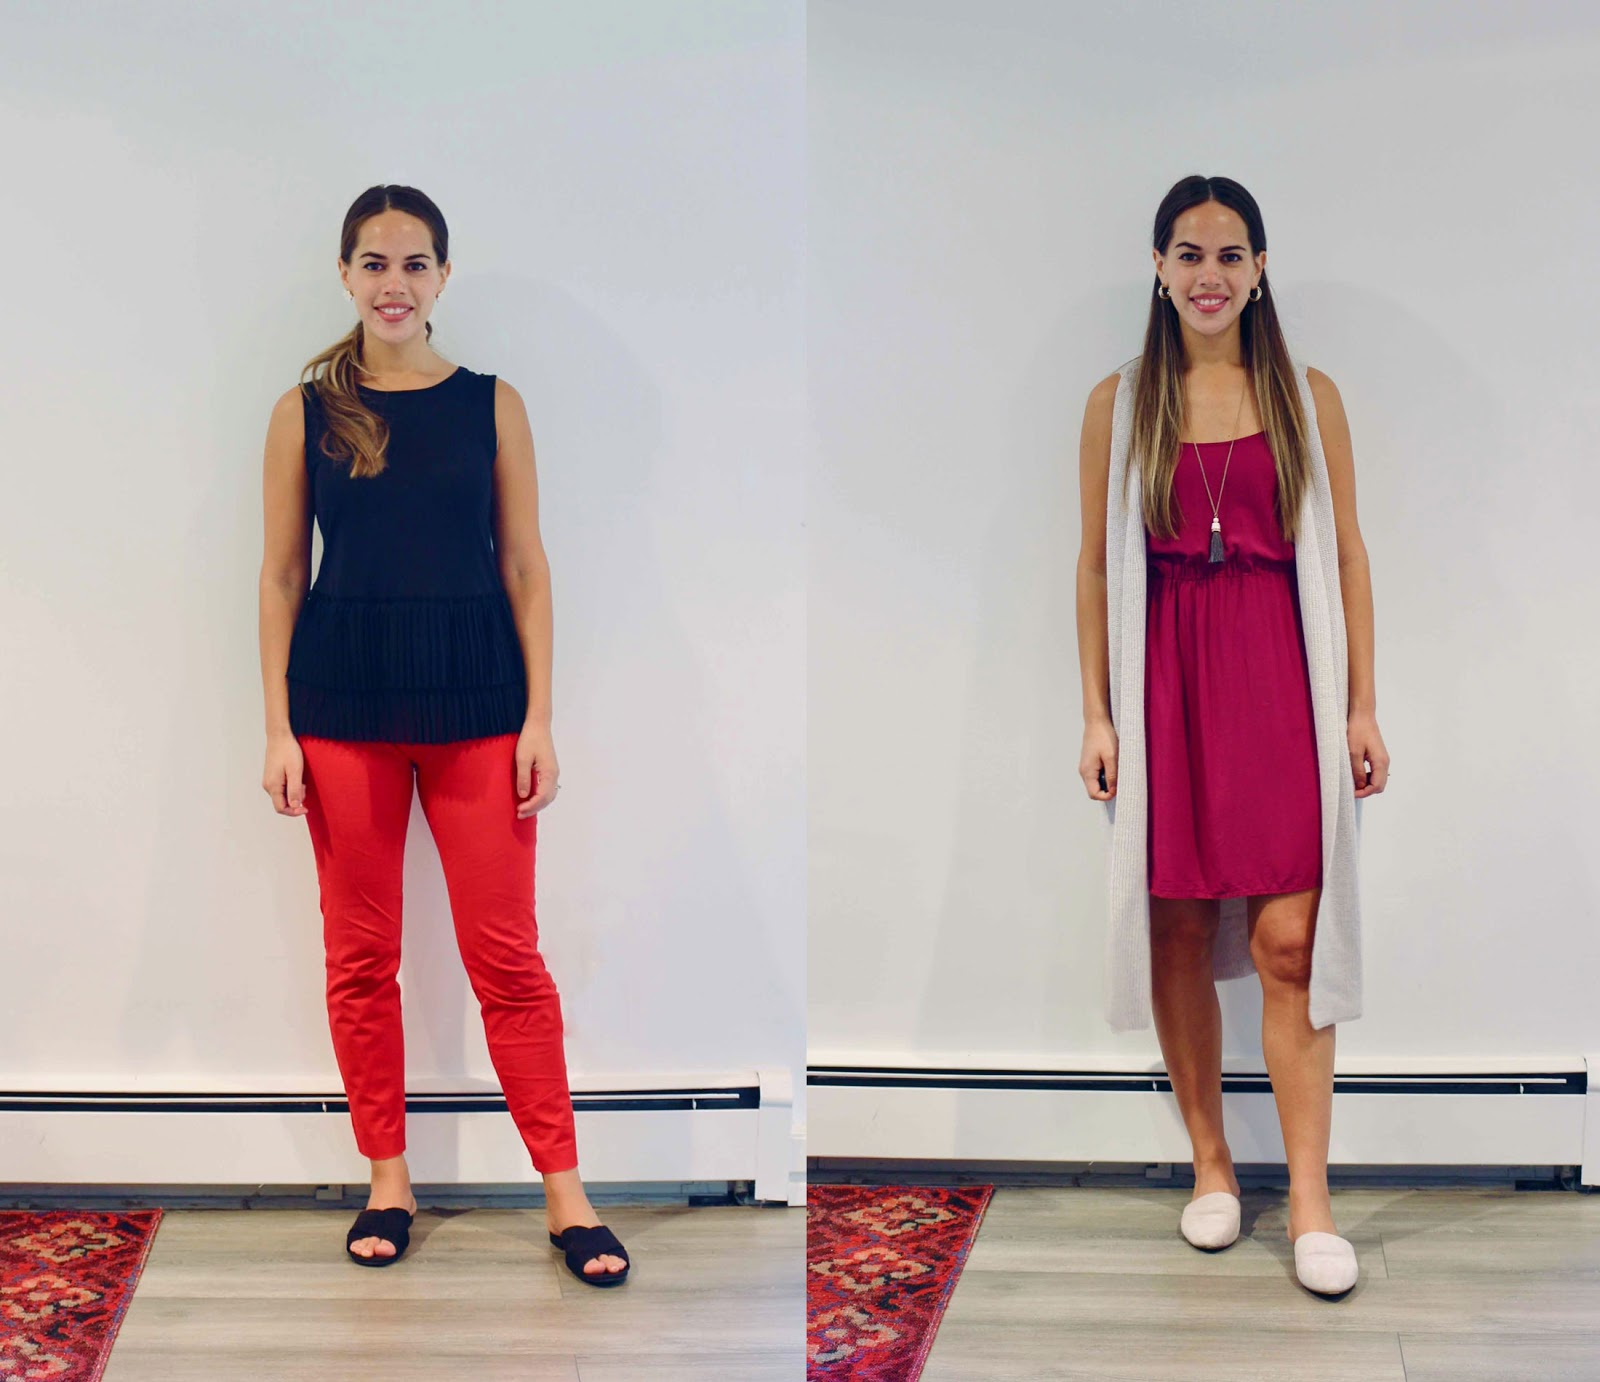 Jules in Flats - August Outfits Week Four (Business Casual Summer Workwear on a Budget)